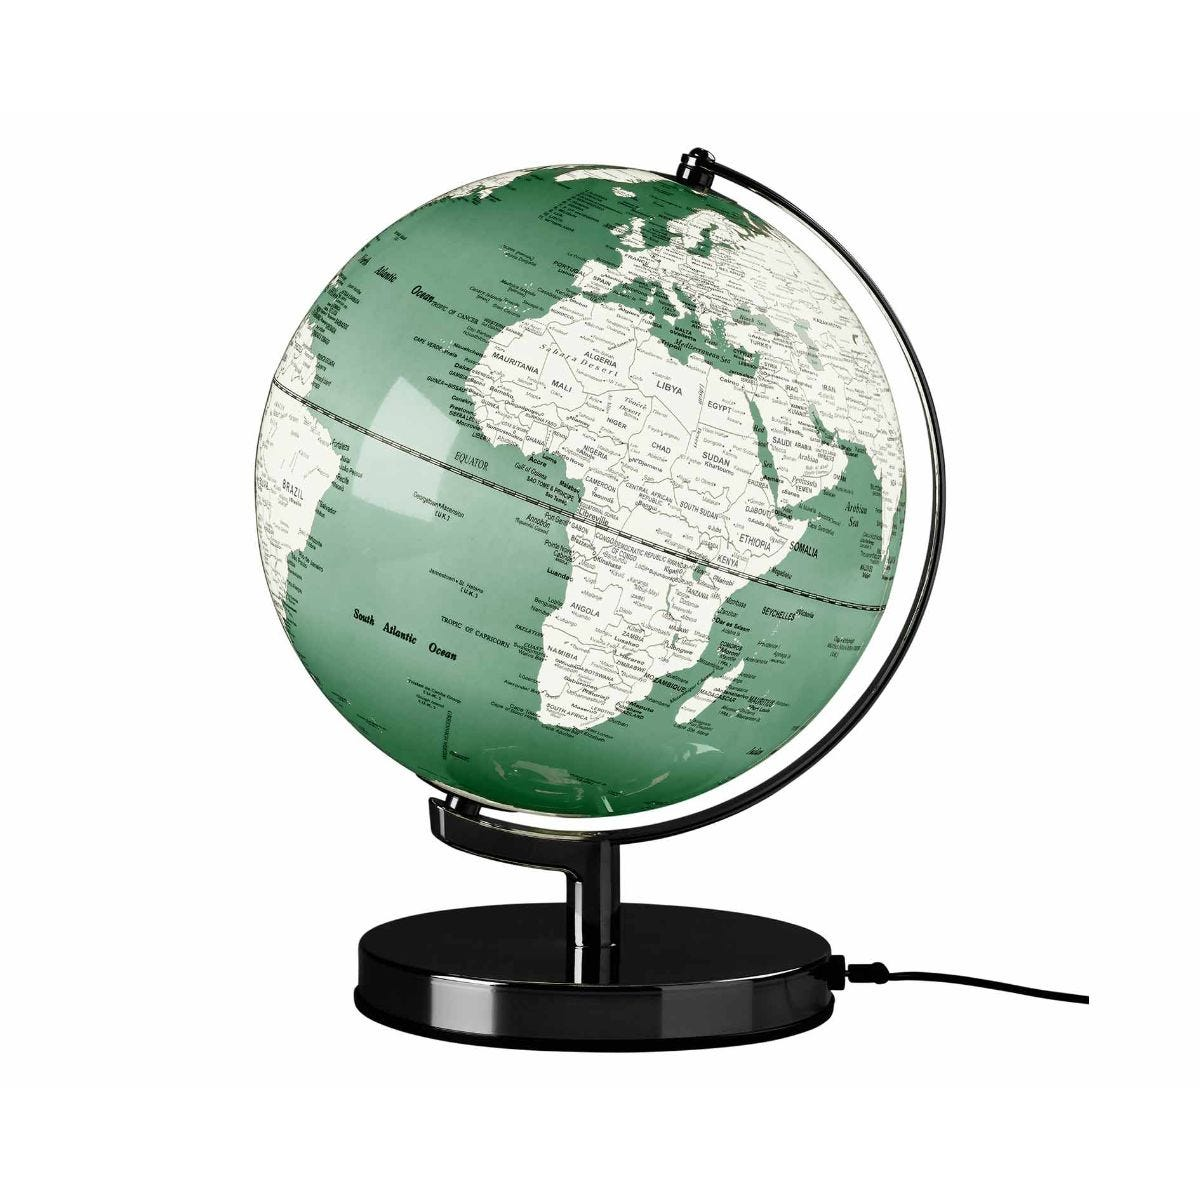 Wild and Wolf Wild Wood Illuminated LED Globe Light 10 Inch Swedish Green